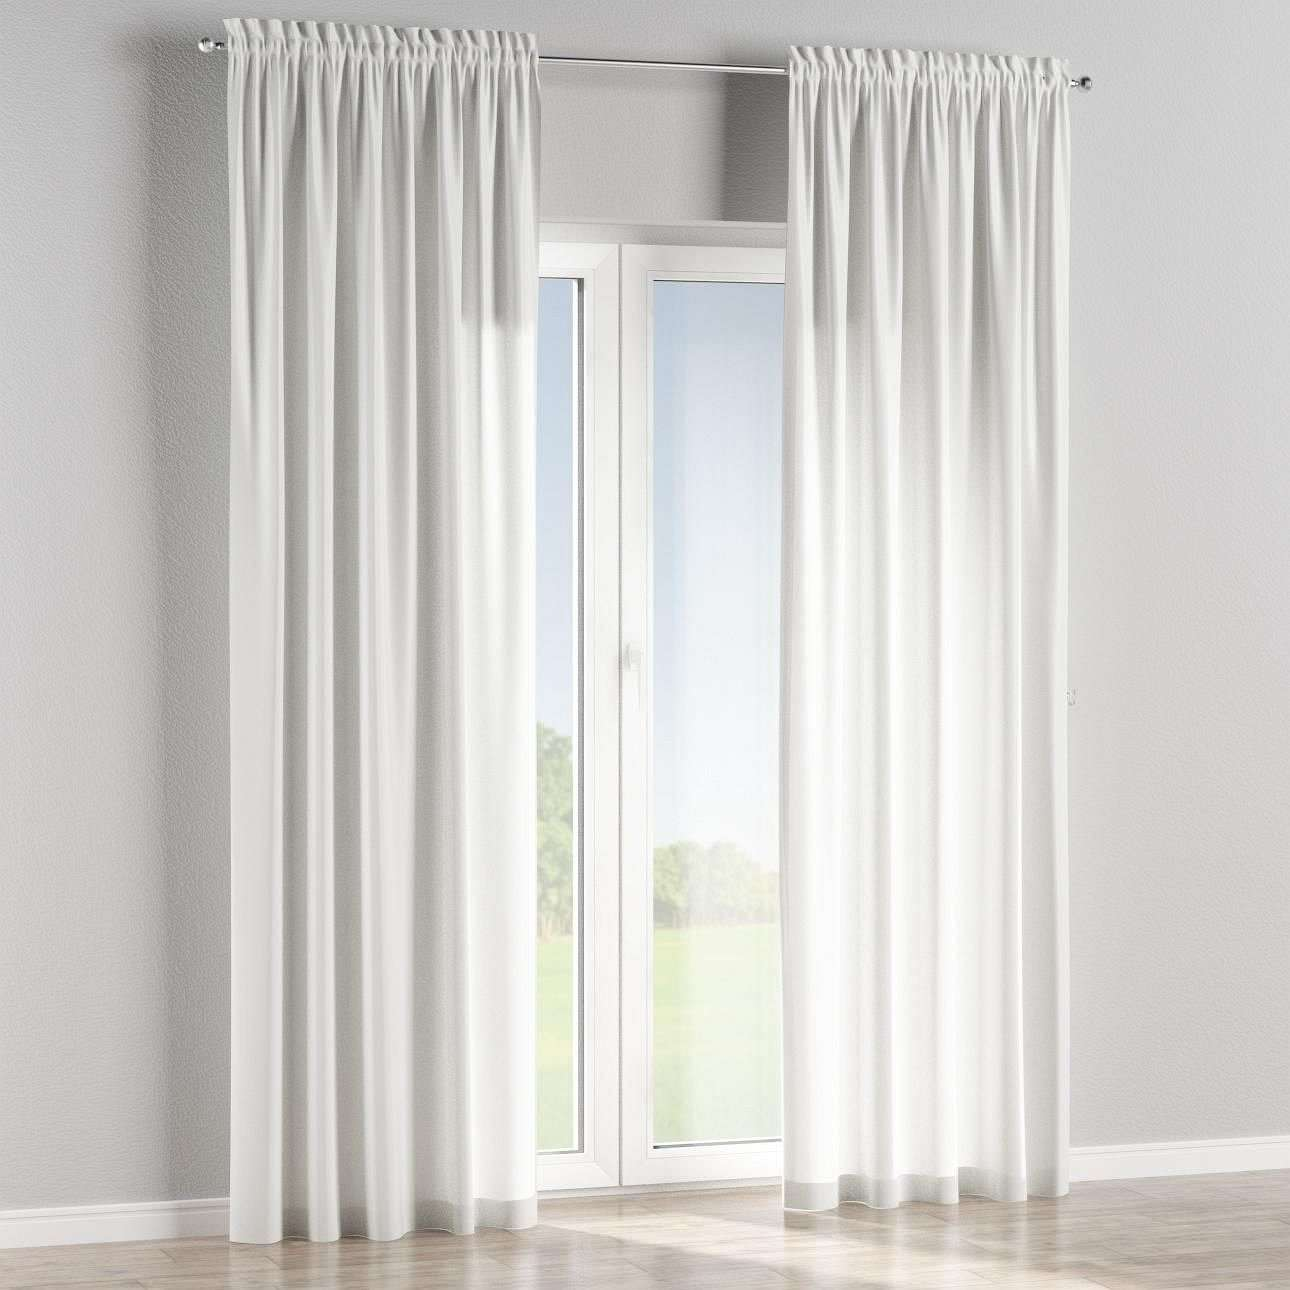 Slot and frill lined curtains in collection Rustica, fabric: 138-19